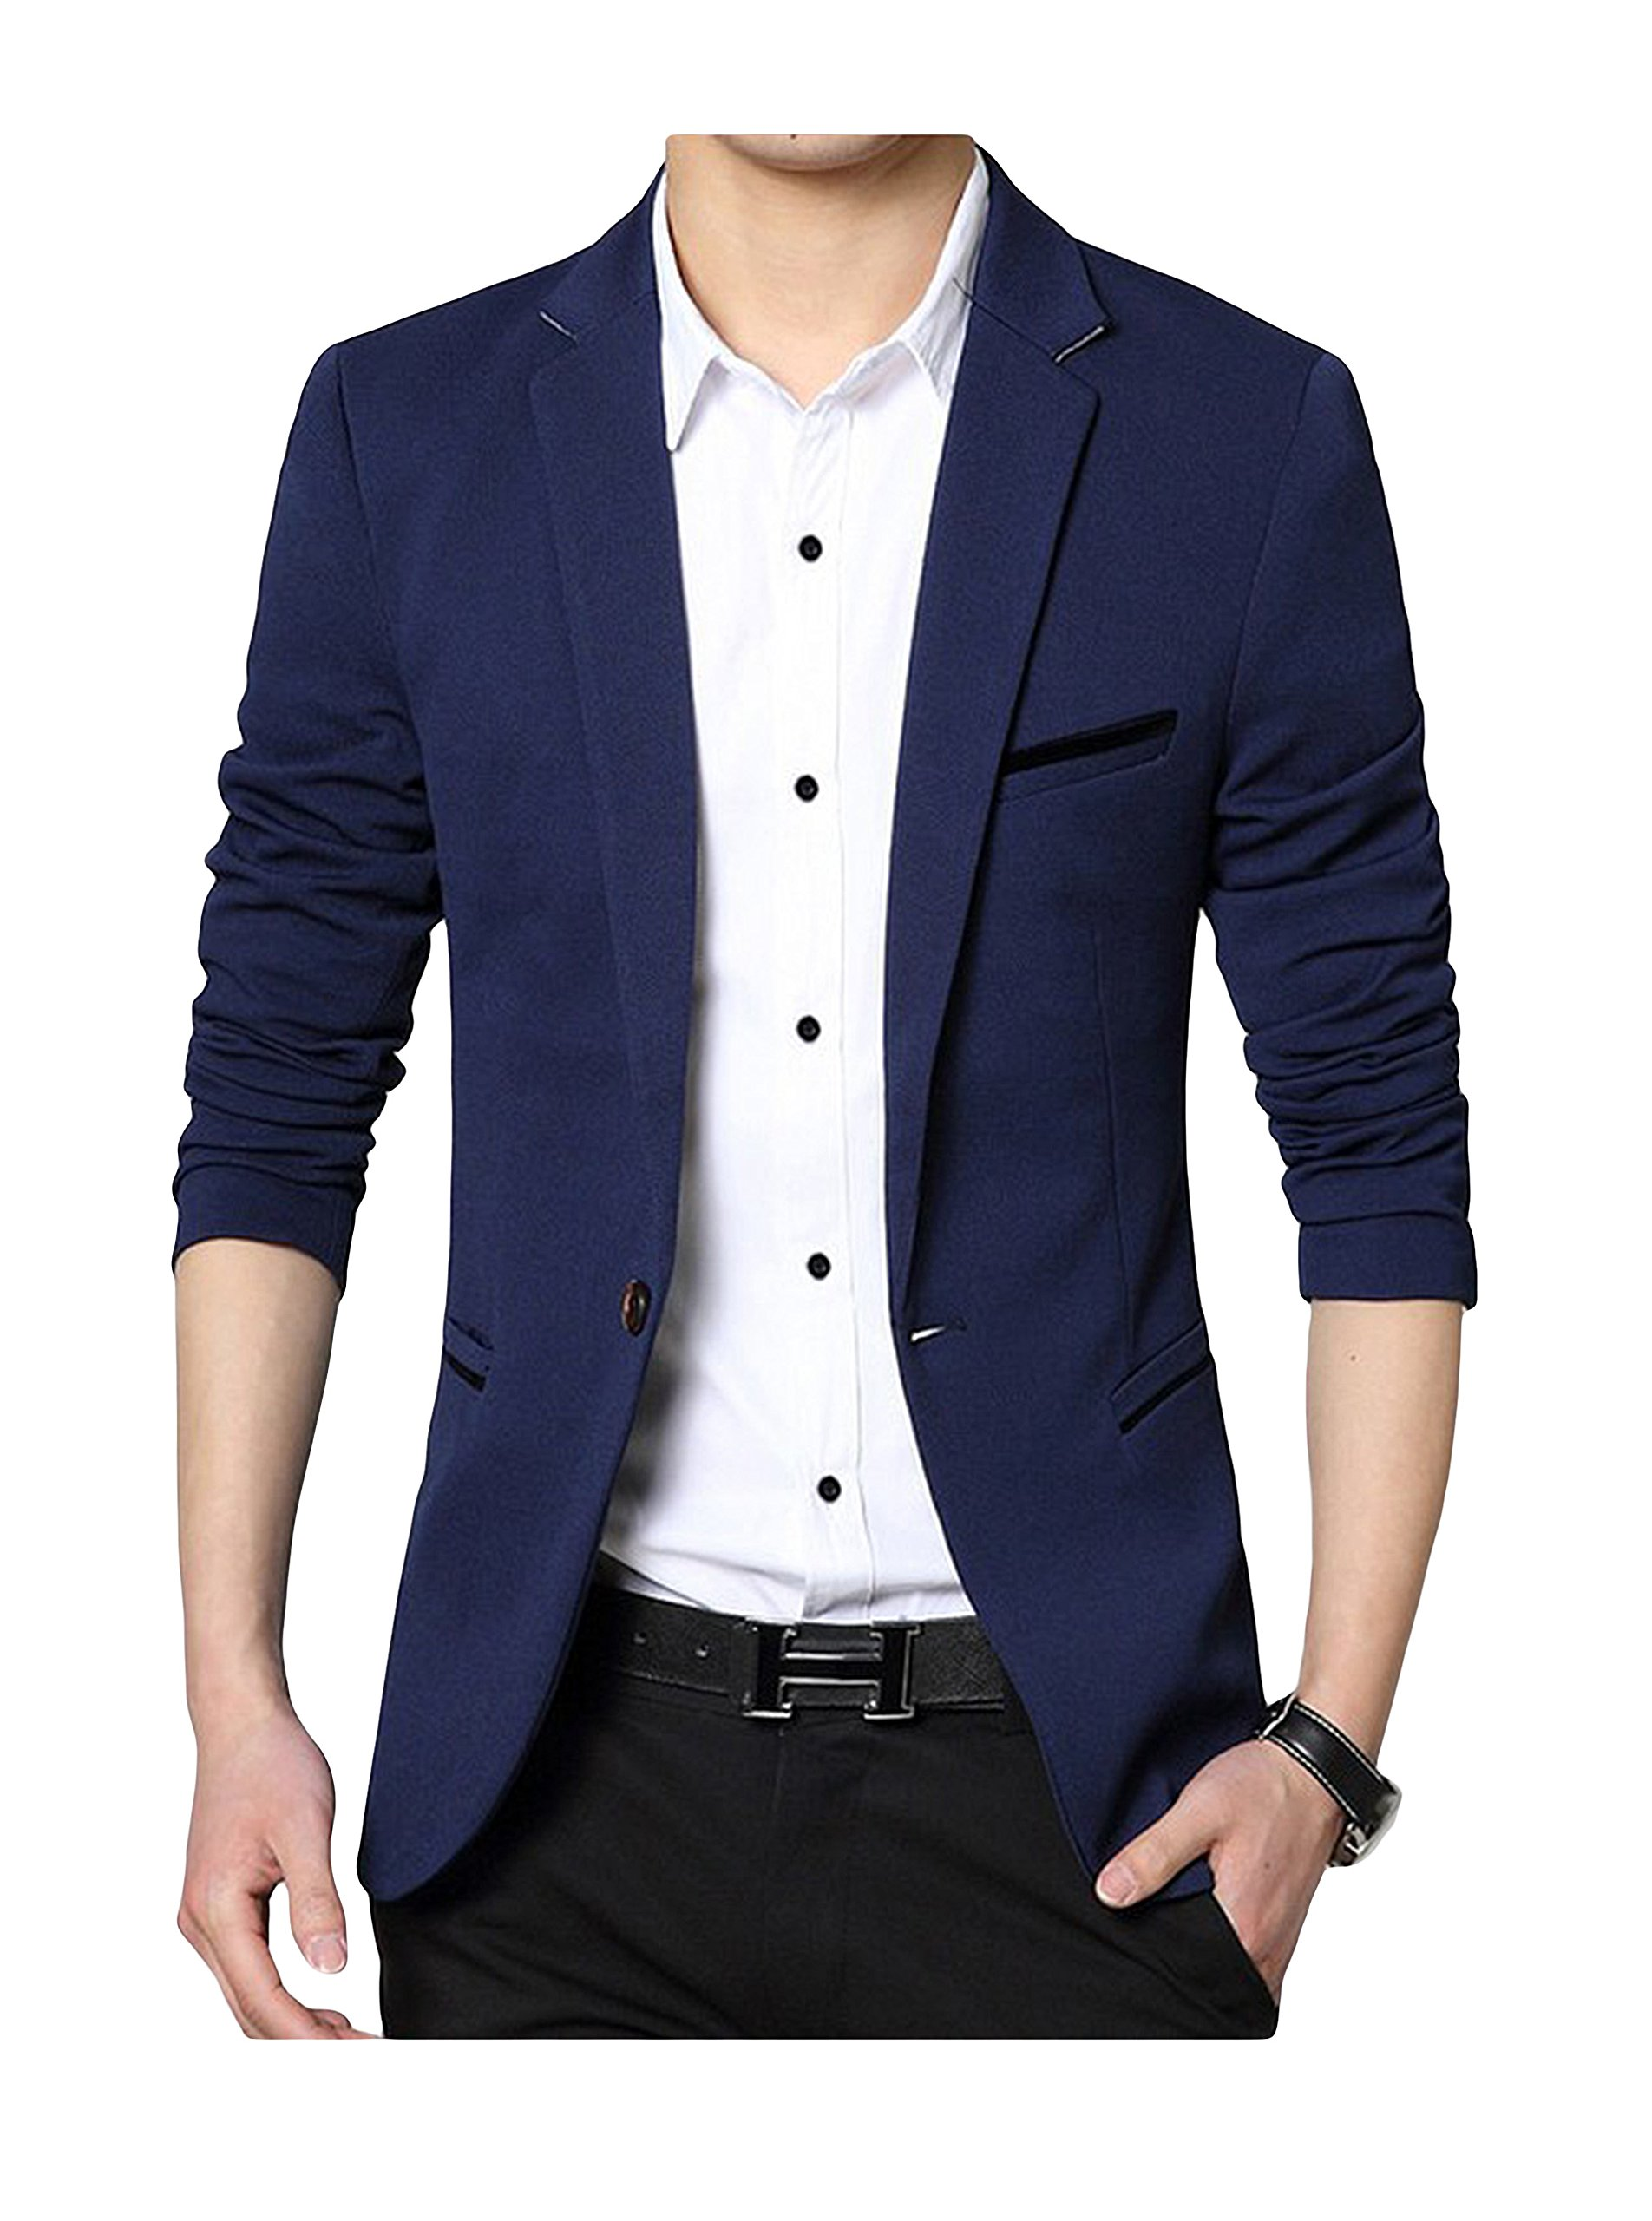 GEEK LIGHTING Men's Fashion Casual Long Sleeve Slim Office Blazer Navy US Large/Label 4X-Large